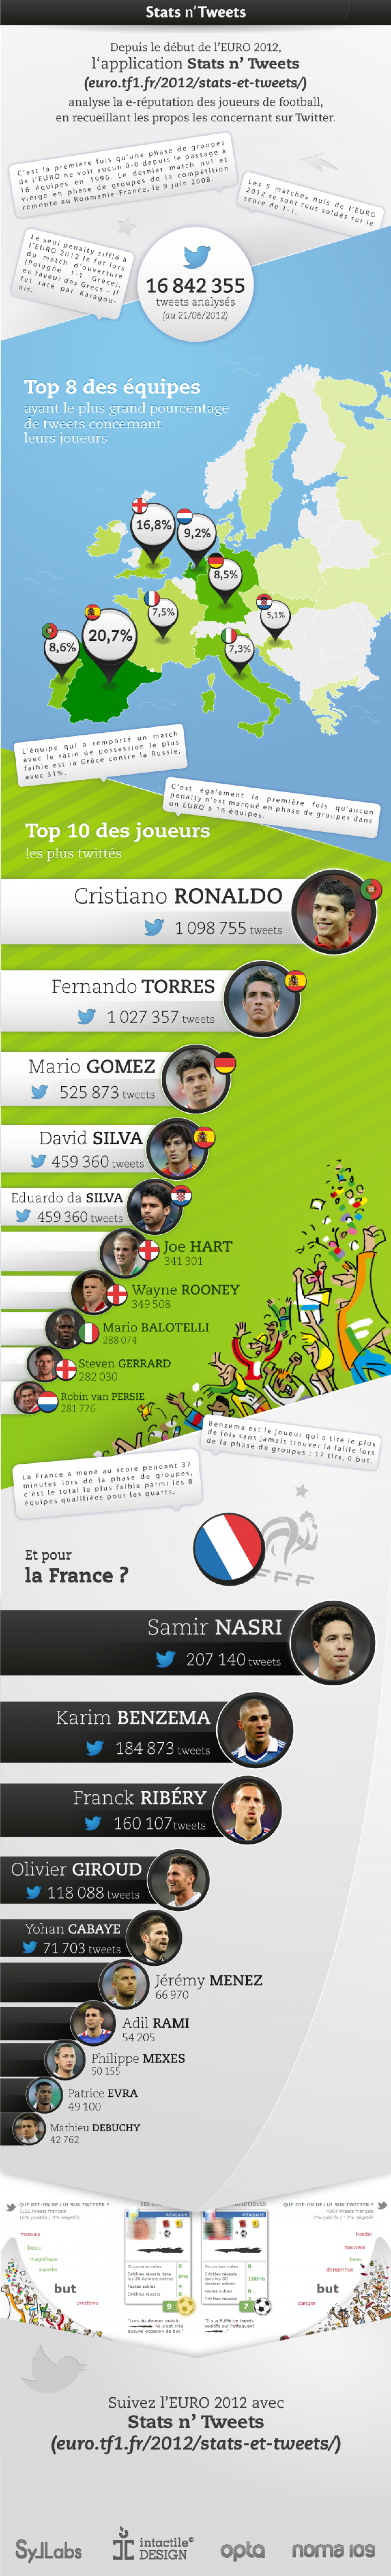 Stats n'Tweets Infographic